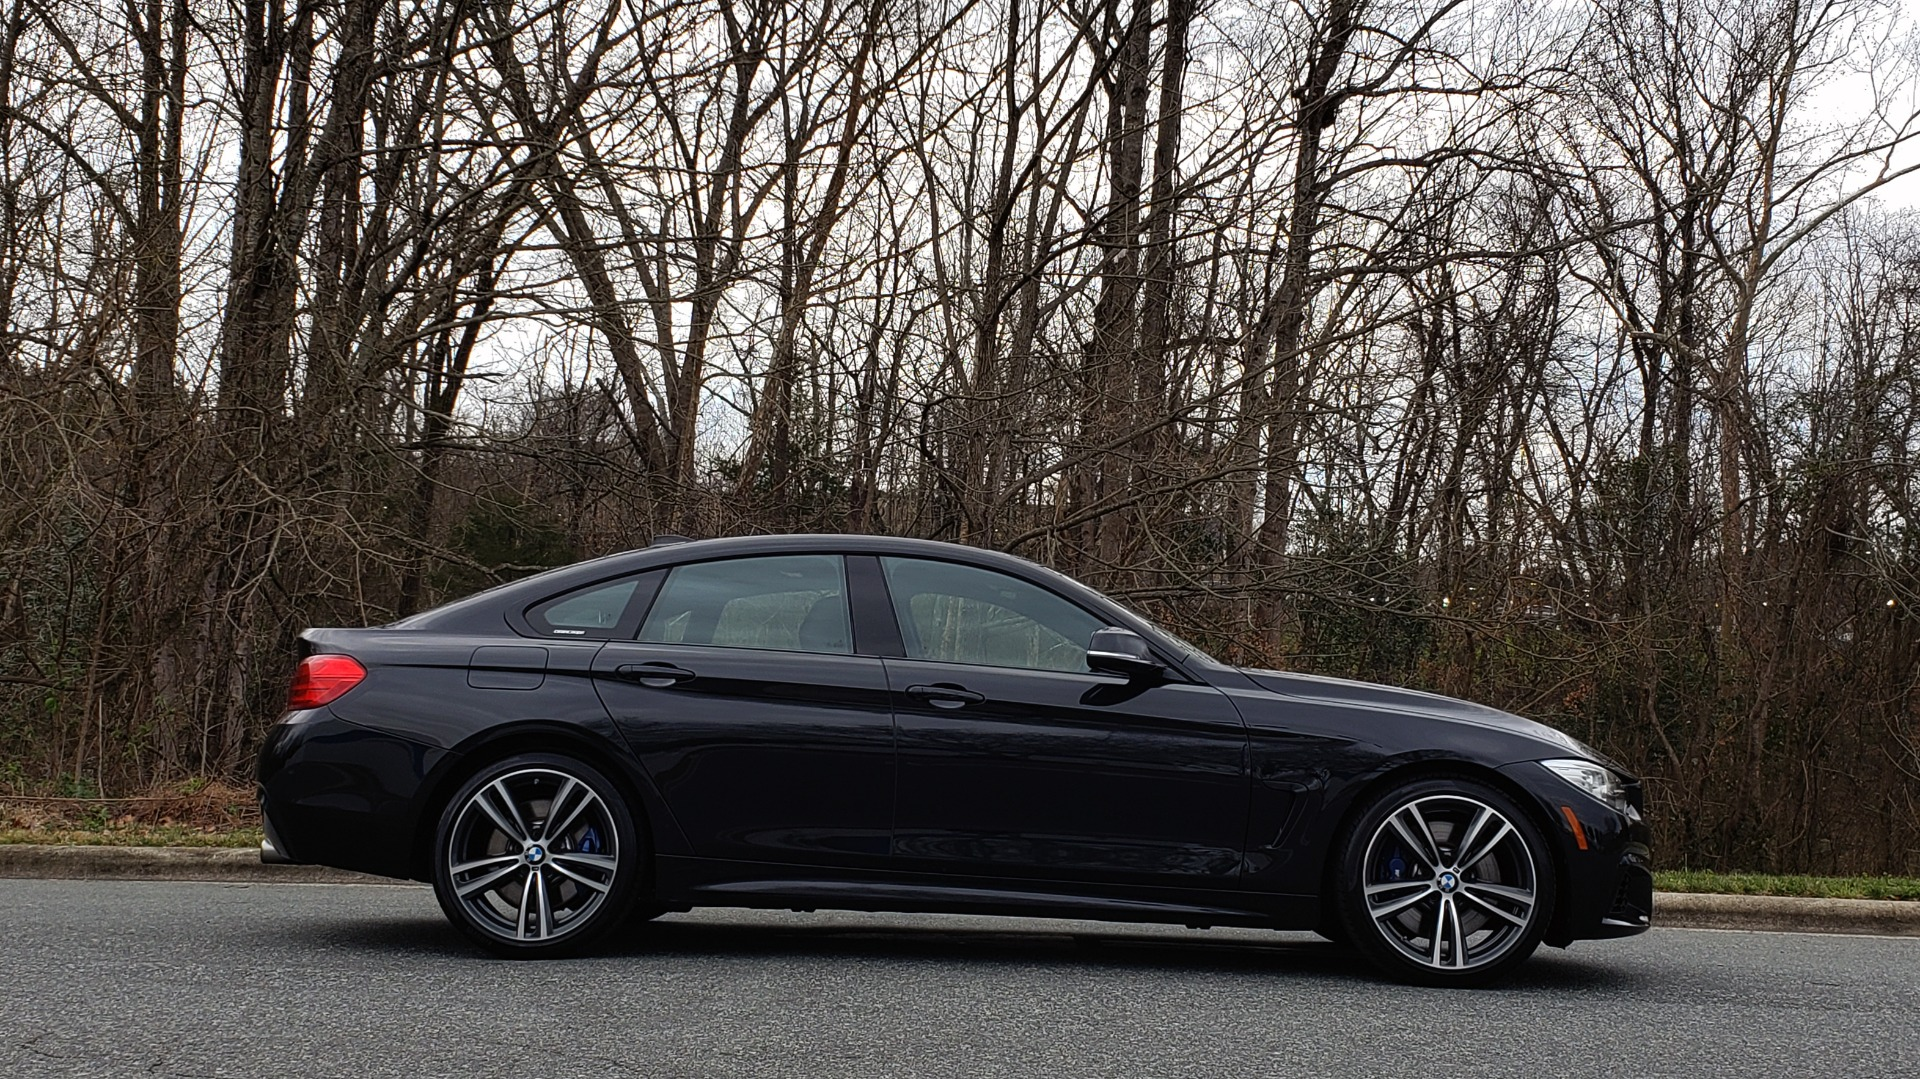 Used 2017 BMW 4 SERIES 440i M-SPORT / TECH / TRACK HANDLING / APPLE CAR PLAY for sale Sold at Formula Imports in Charlotte NC 28227 6